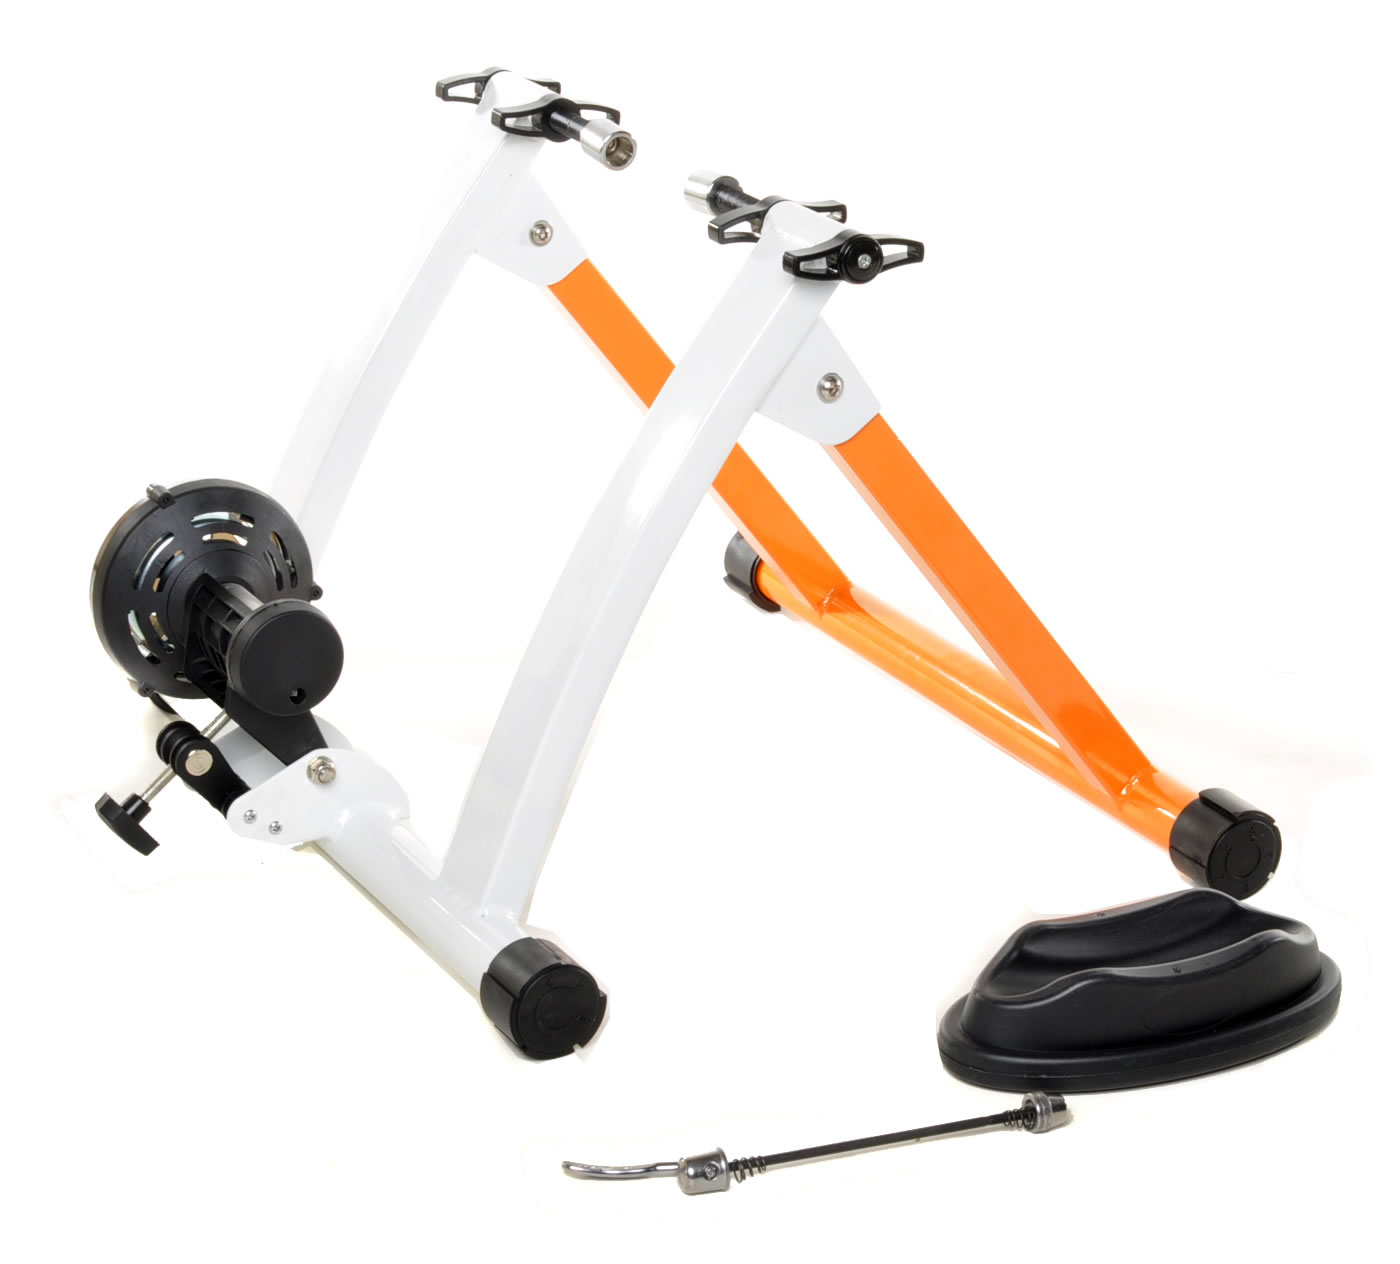 Exercise Bike Portable: Conquer Indoor Bike Trainer Portable Exercise Bicycle